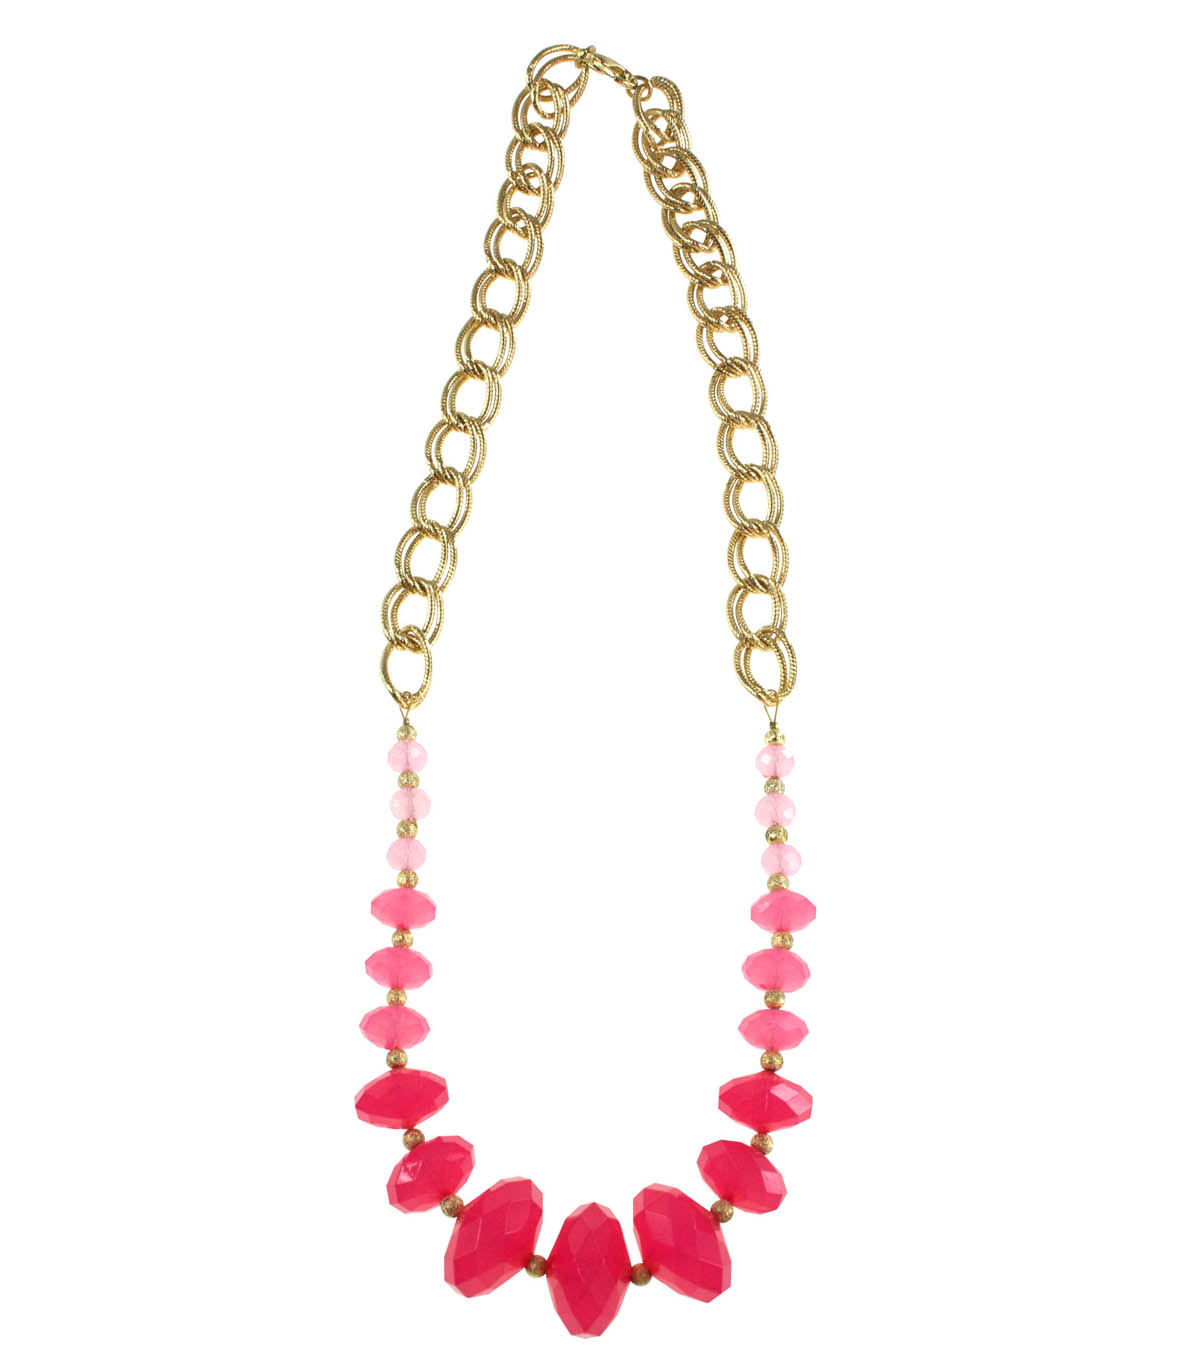 Pink Graduated Ombre Necklace